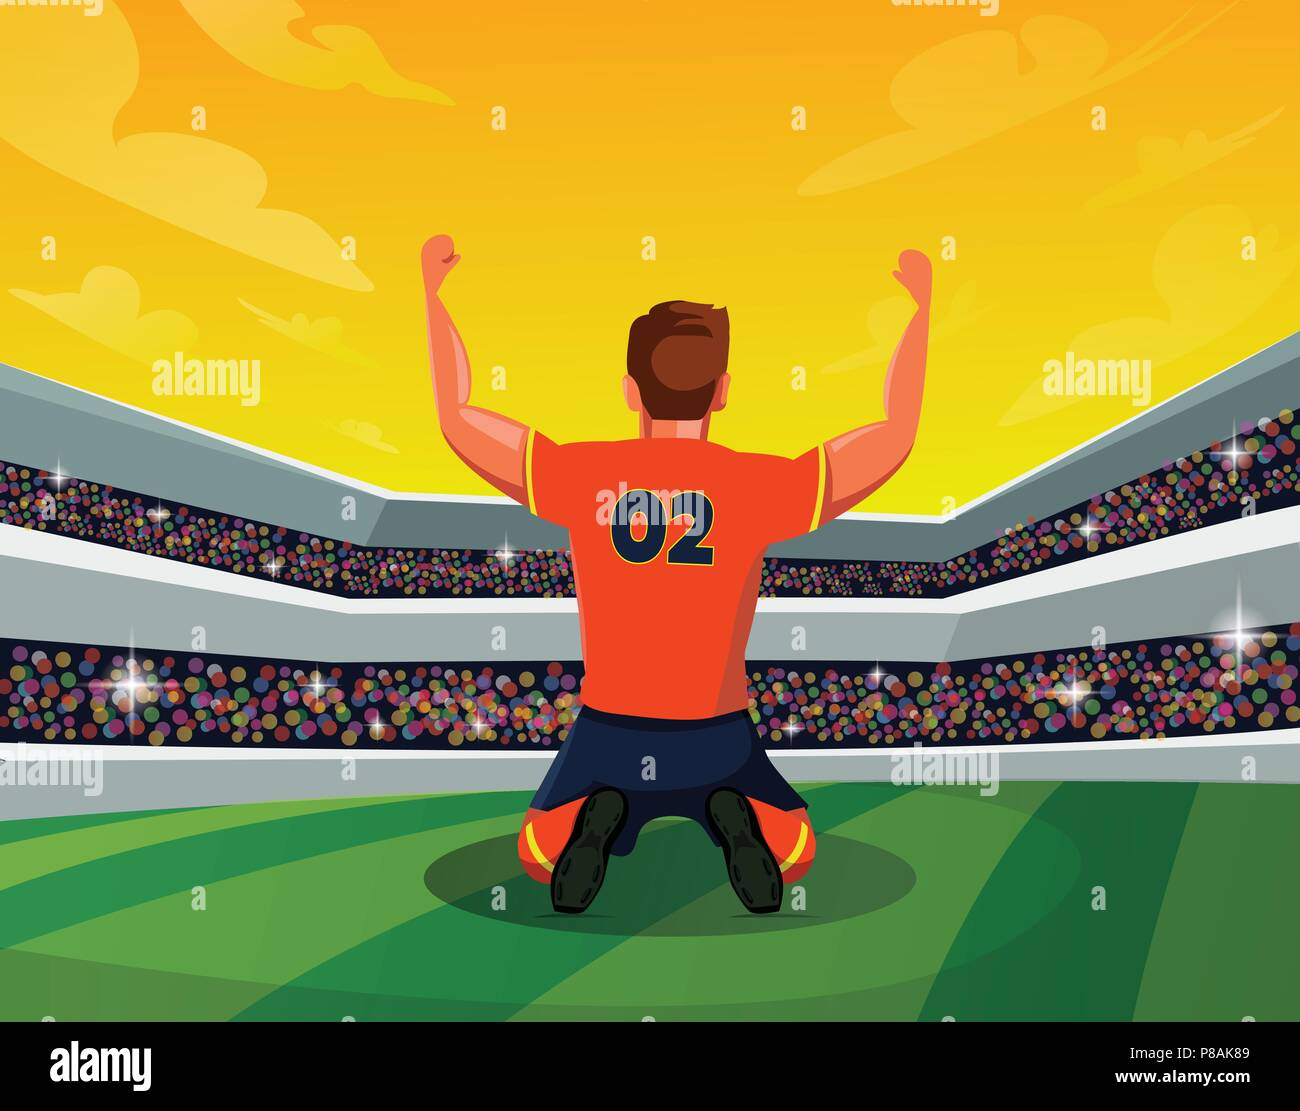 concept of Champion: Rear view of soccer or footballer kneeing on field with winning feeling. Creative soccer design with stadium - Stock Vector